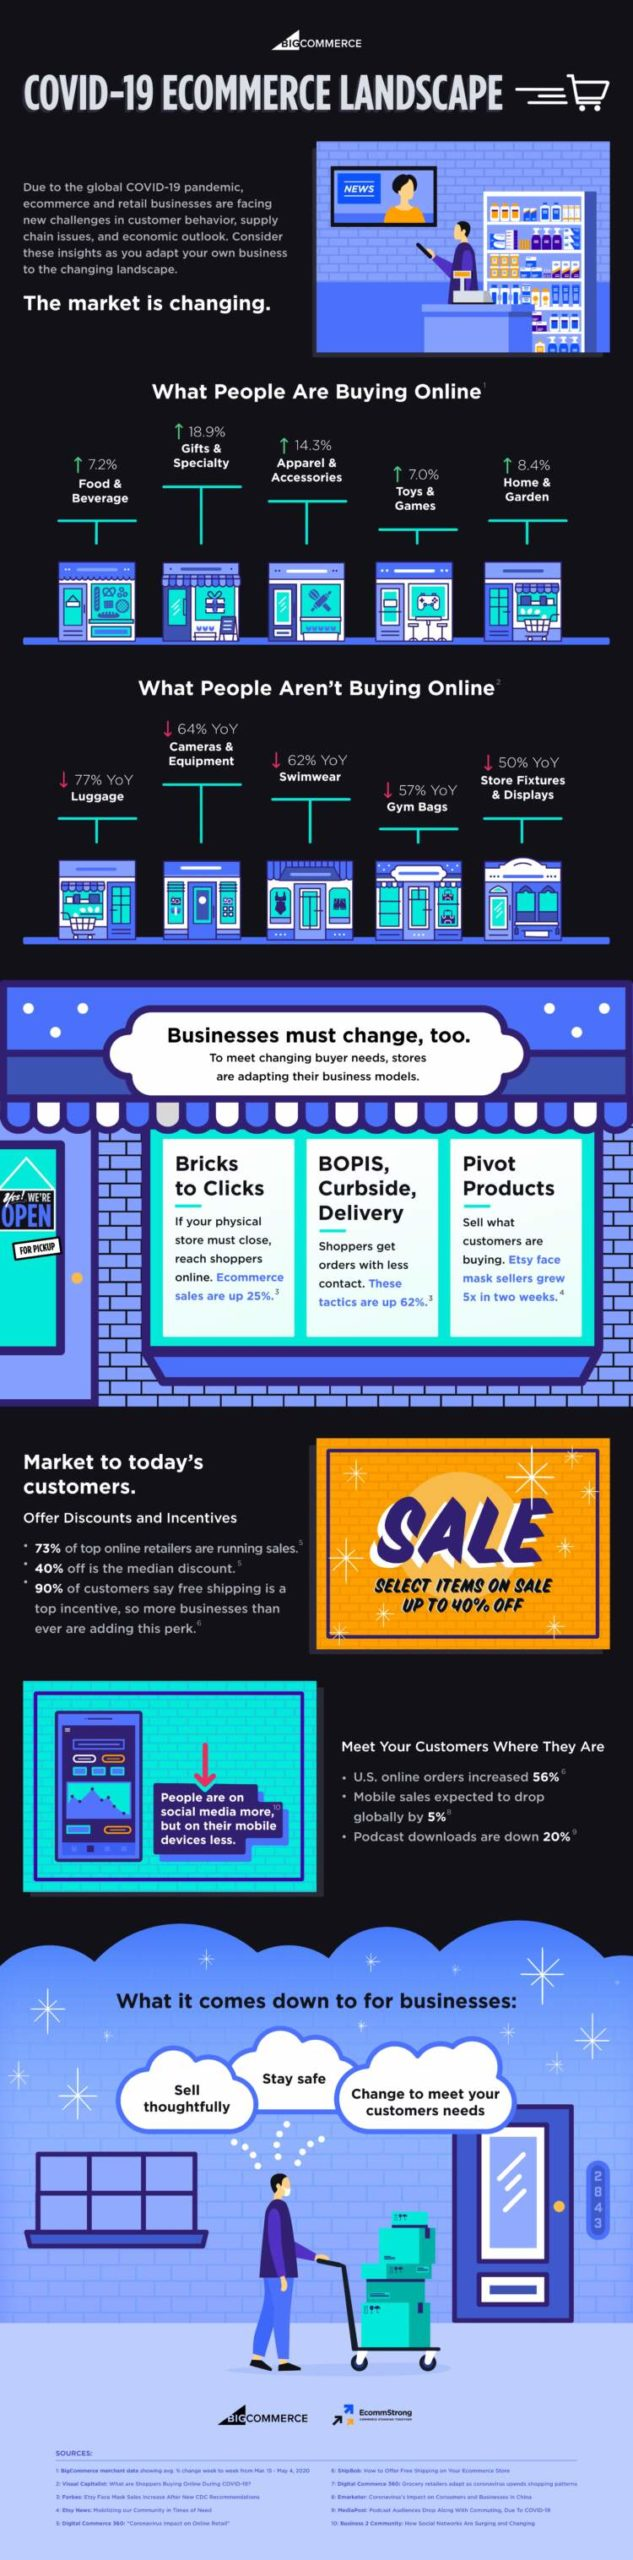 covid 19 infographic about changes in ecommerce landscape